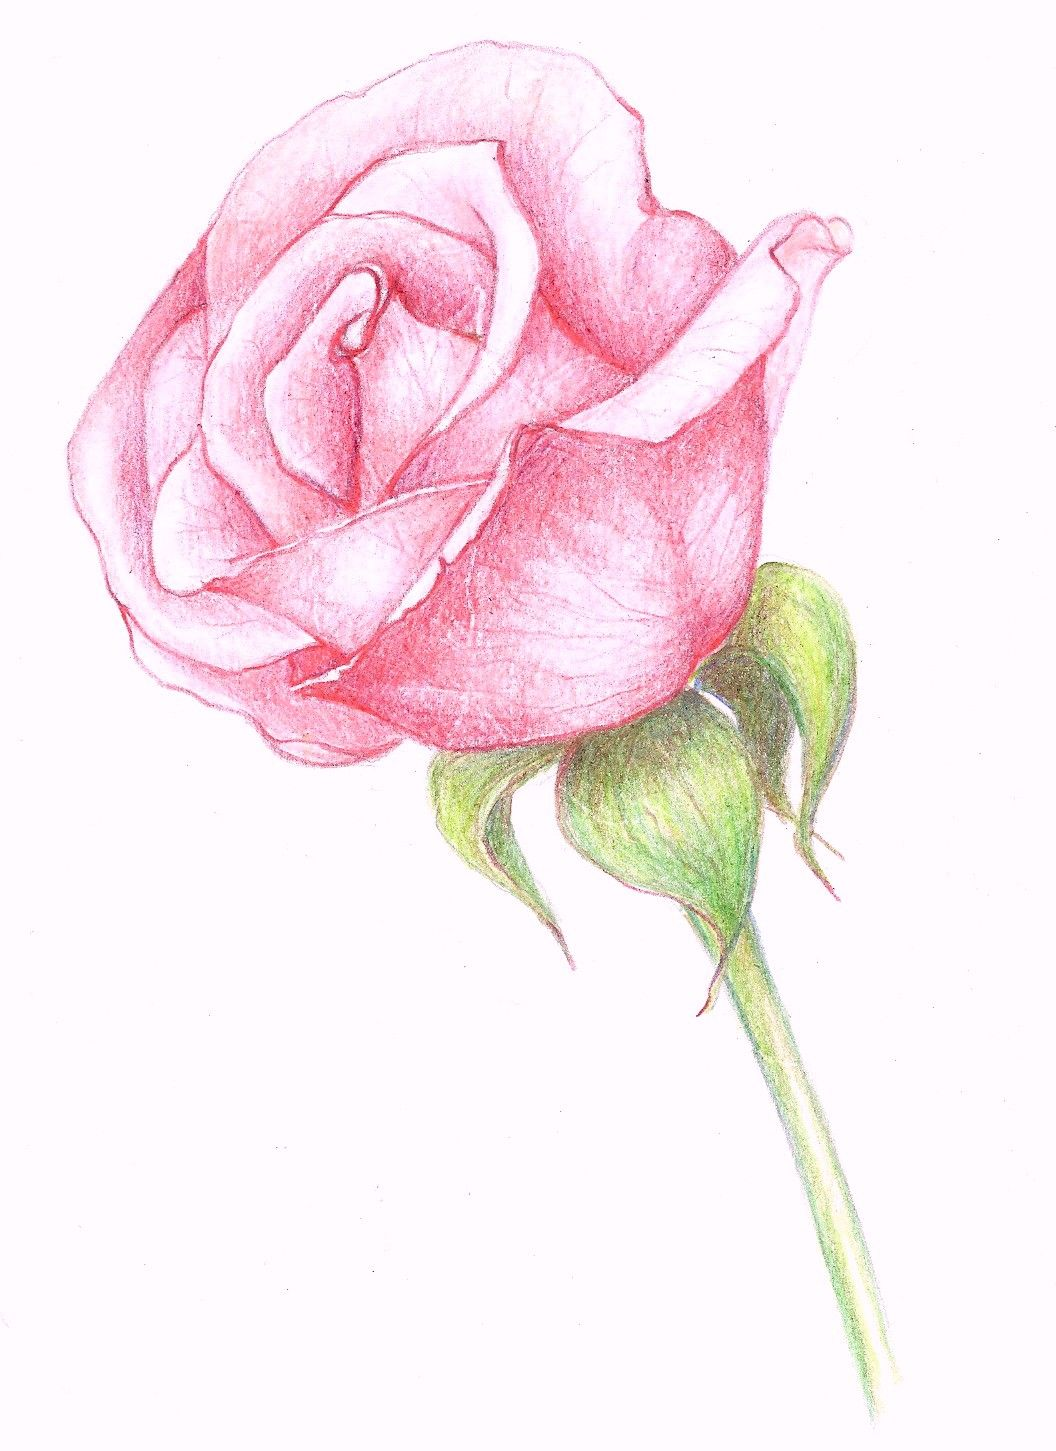 Rose Drawings In Pencil  Drawings: A Pink Rose